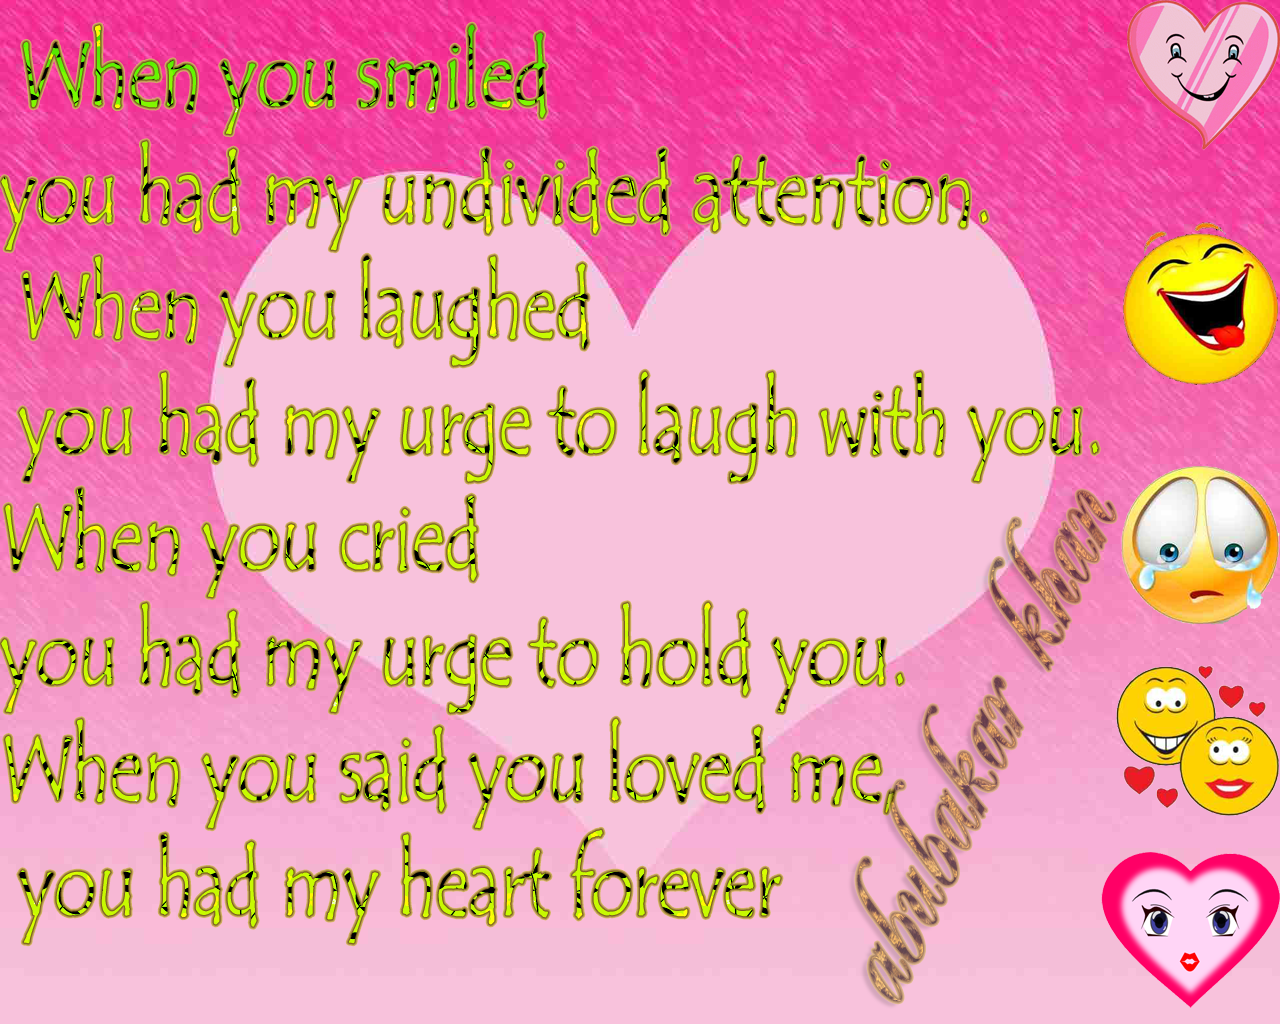 cutest awesome love quotes ever